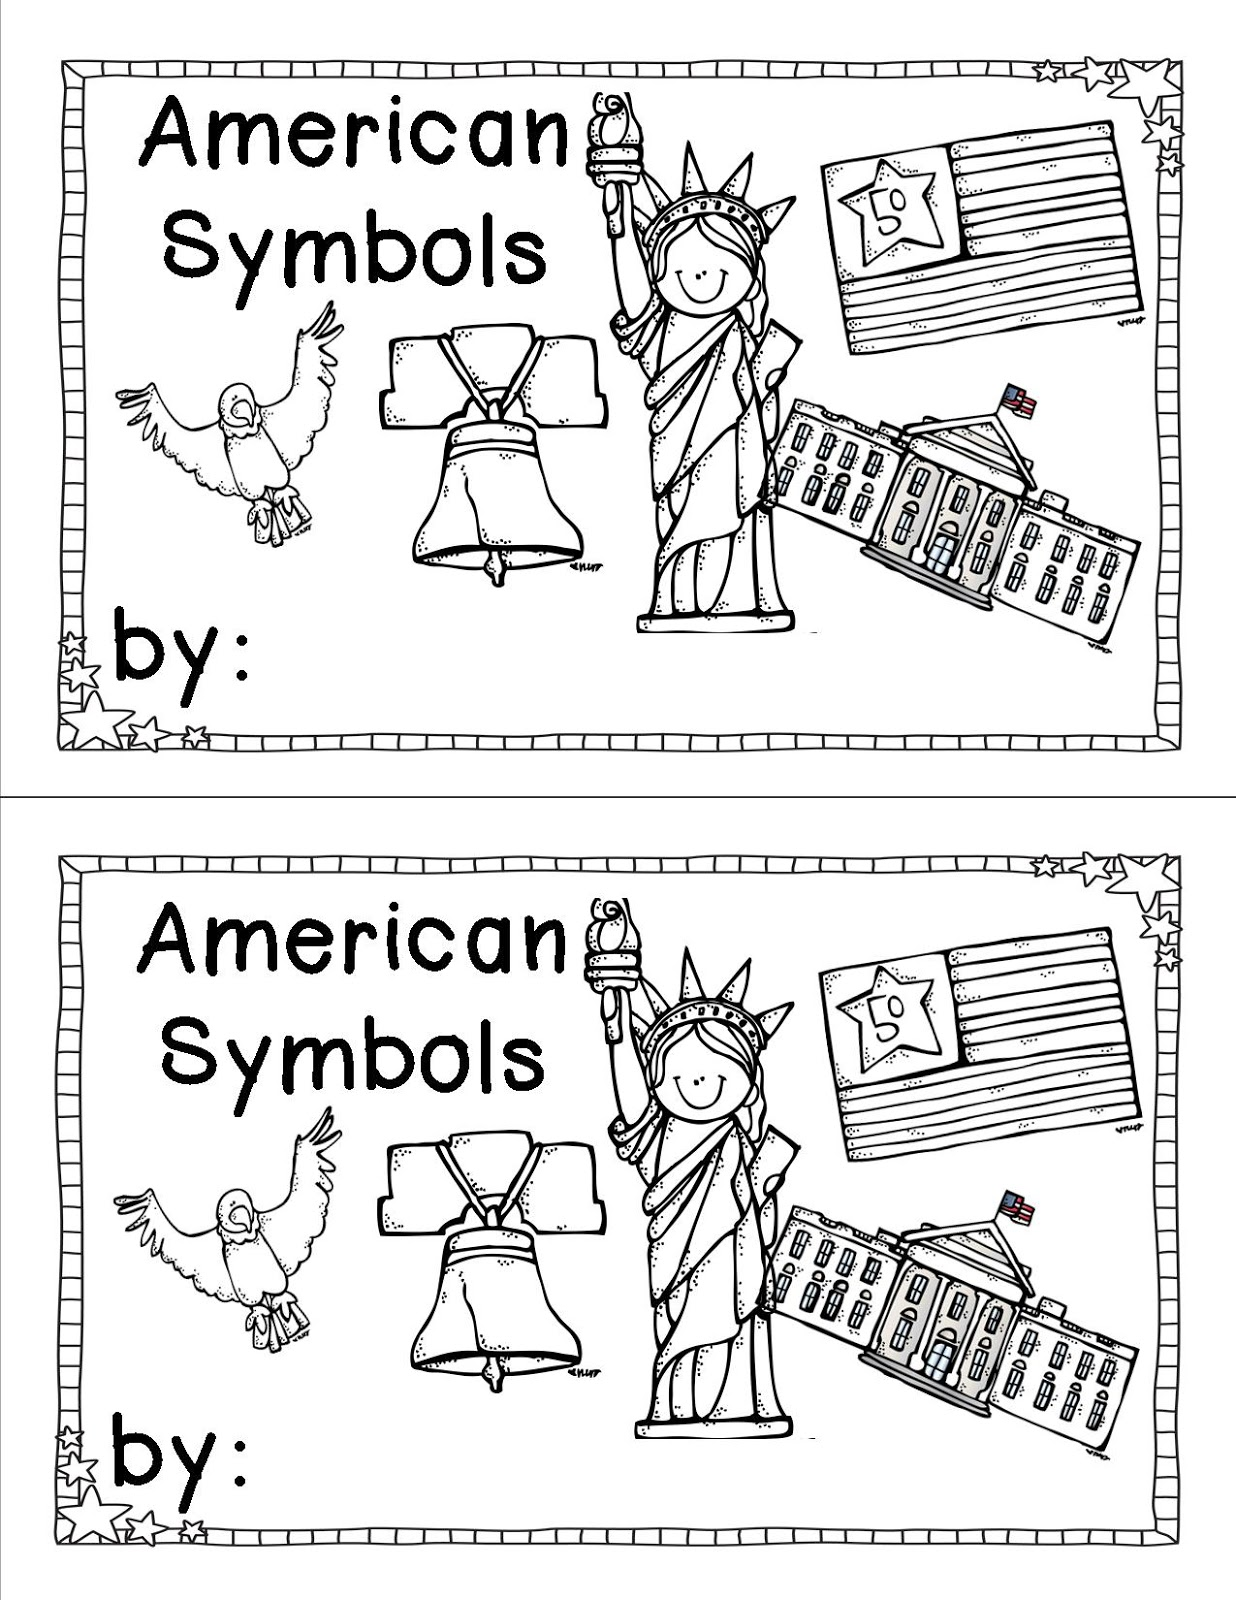 Symbolism of the american flag essay